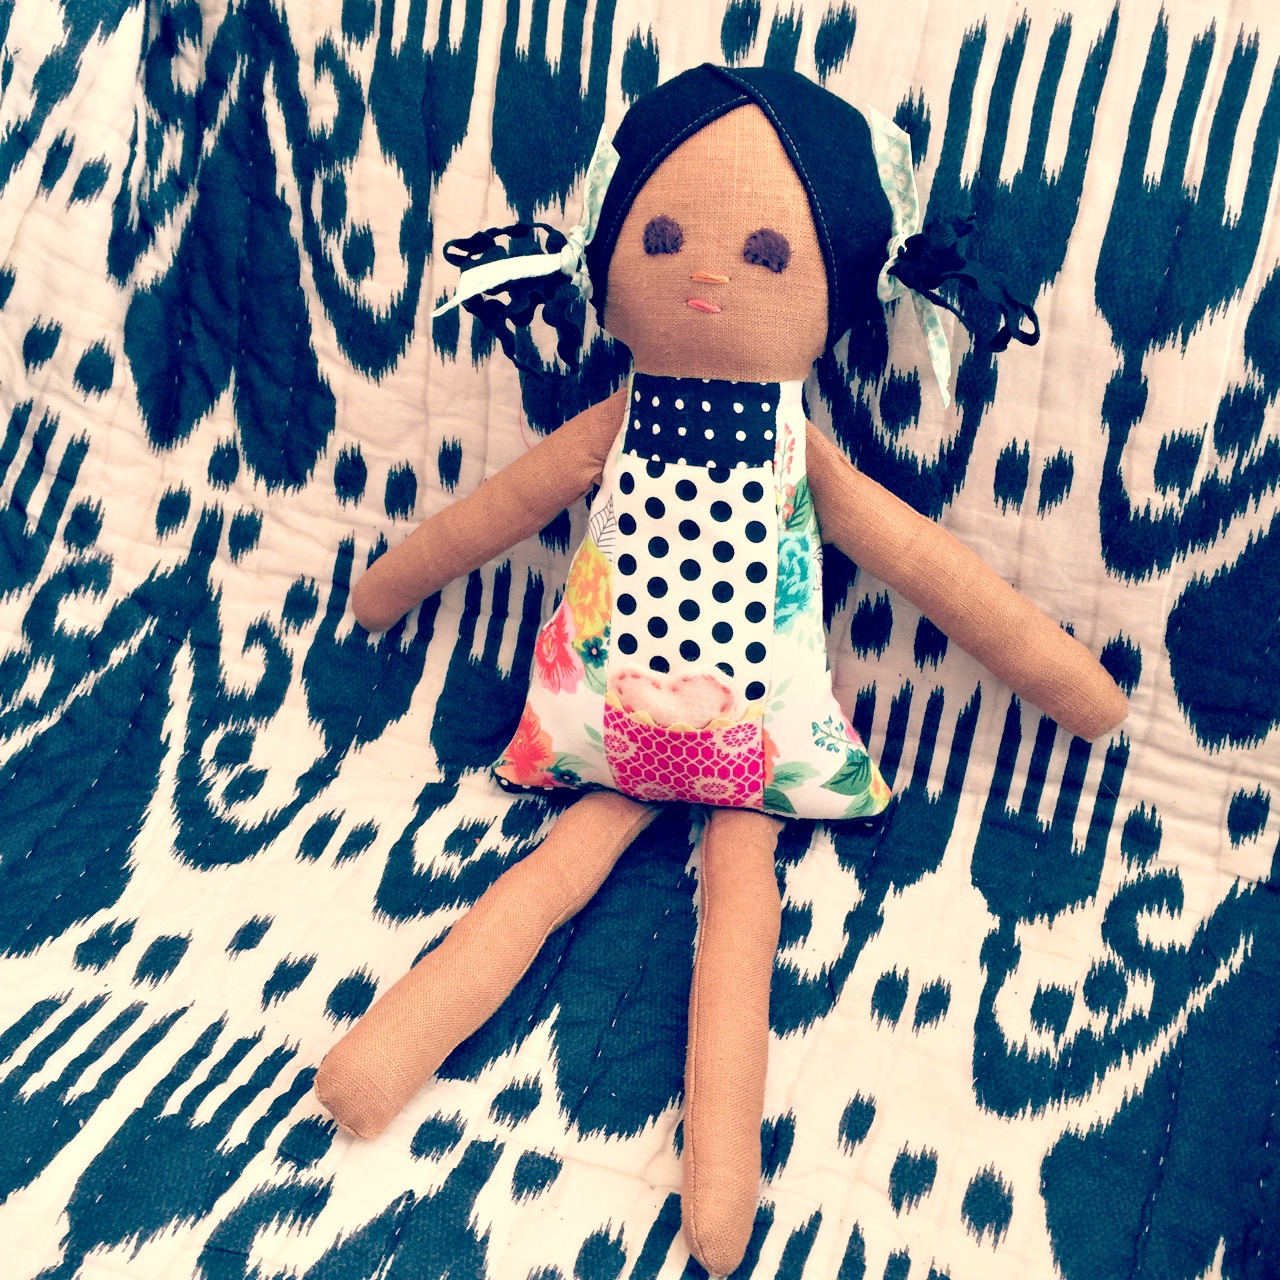 Sewing Smiles doll